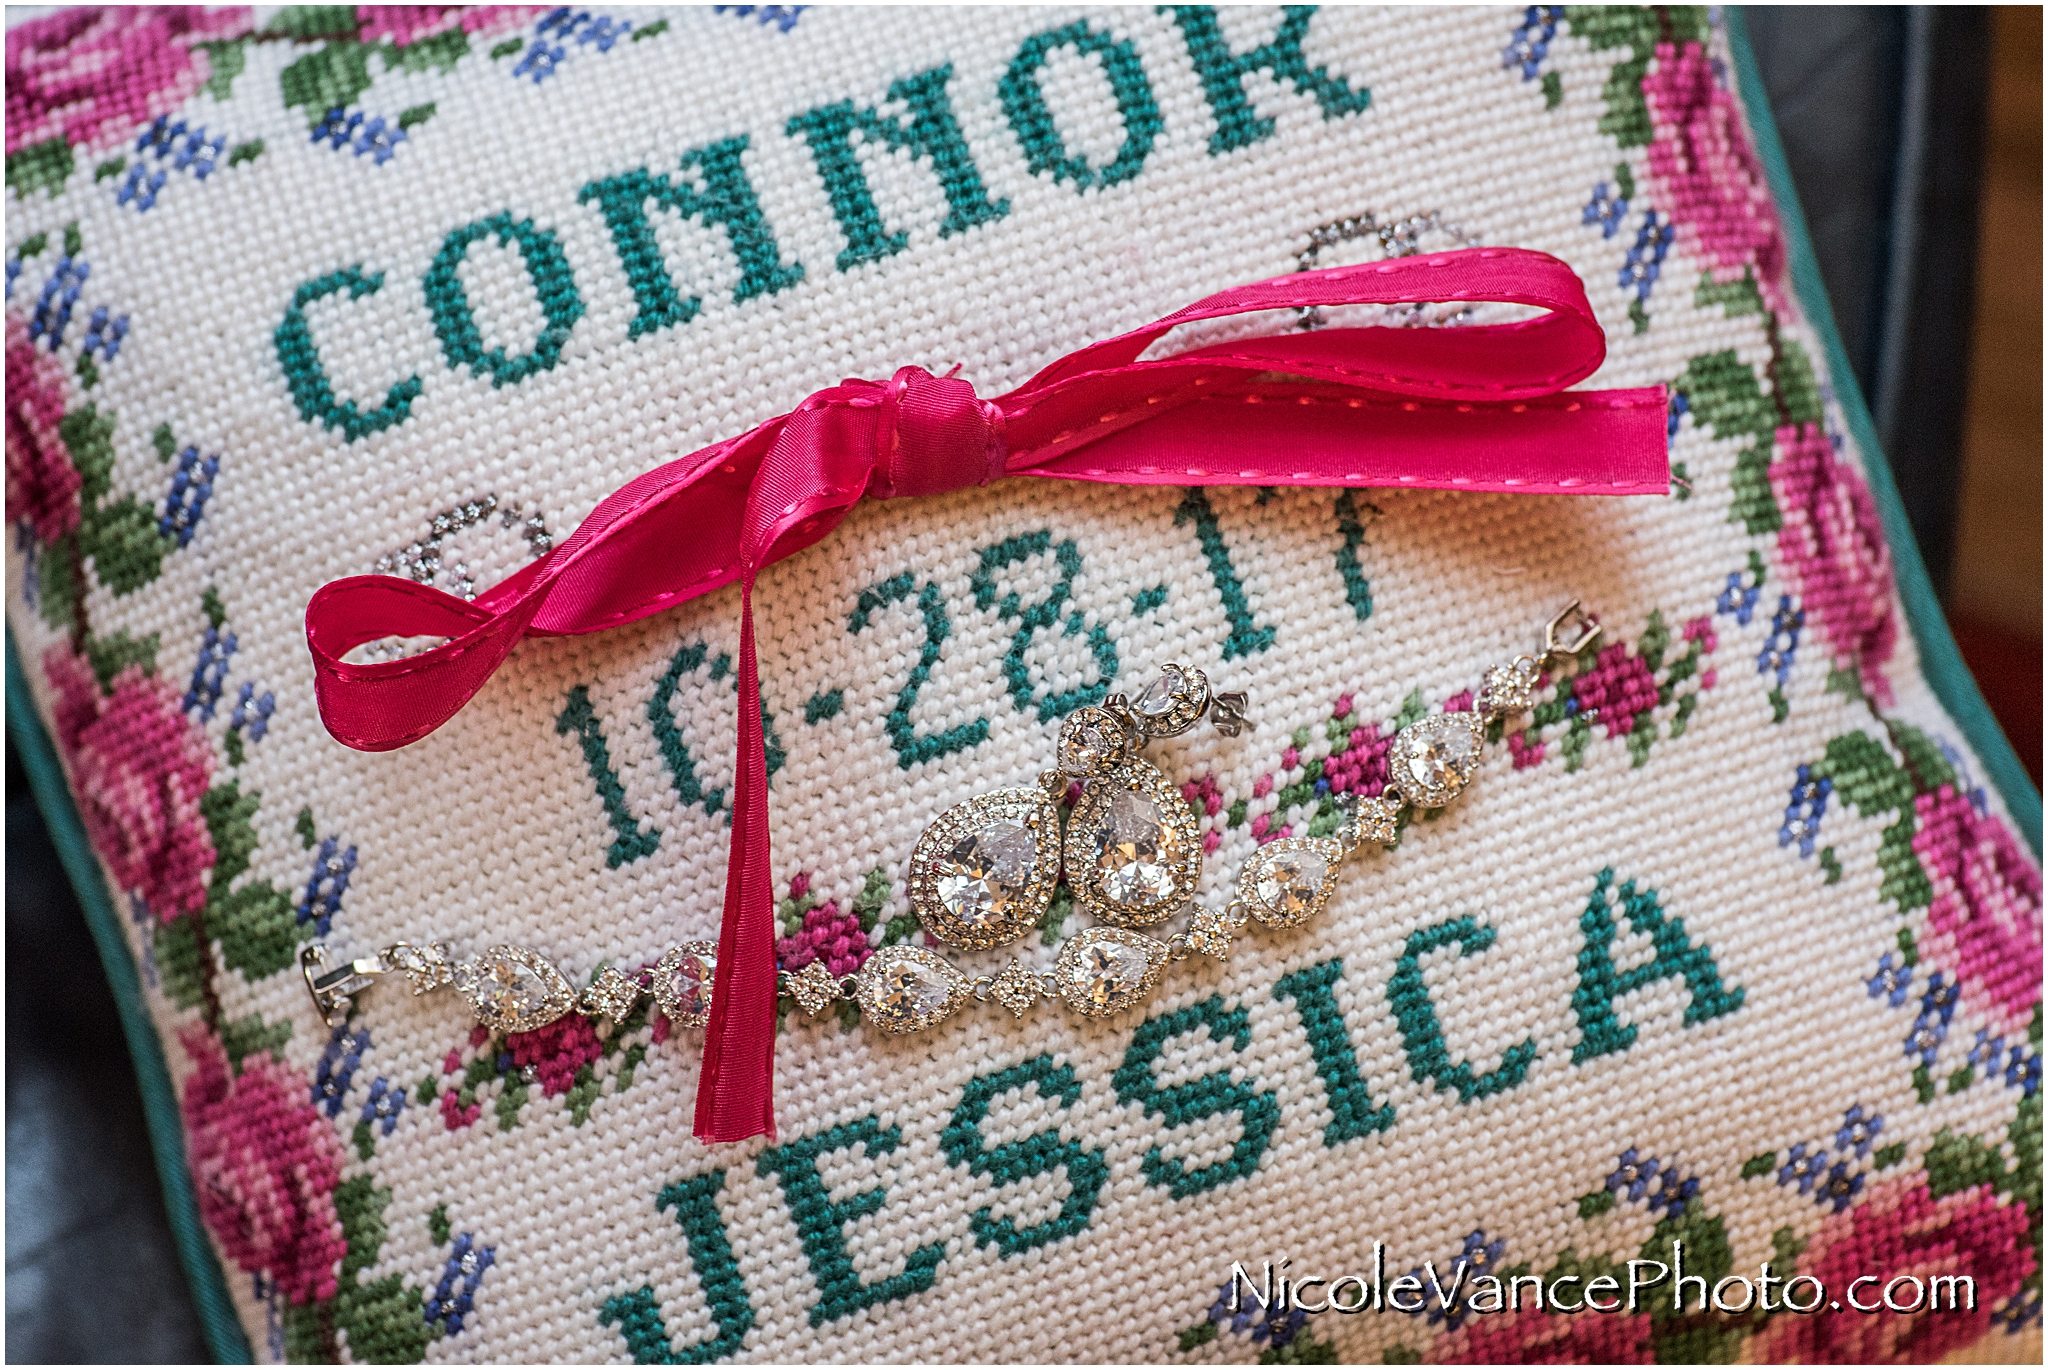 This handstiched needlepoint ring pillow is made bride's mom.